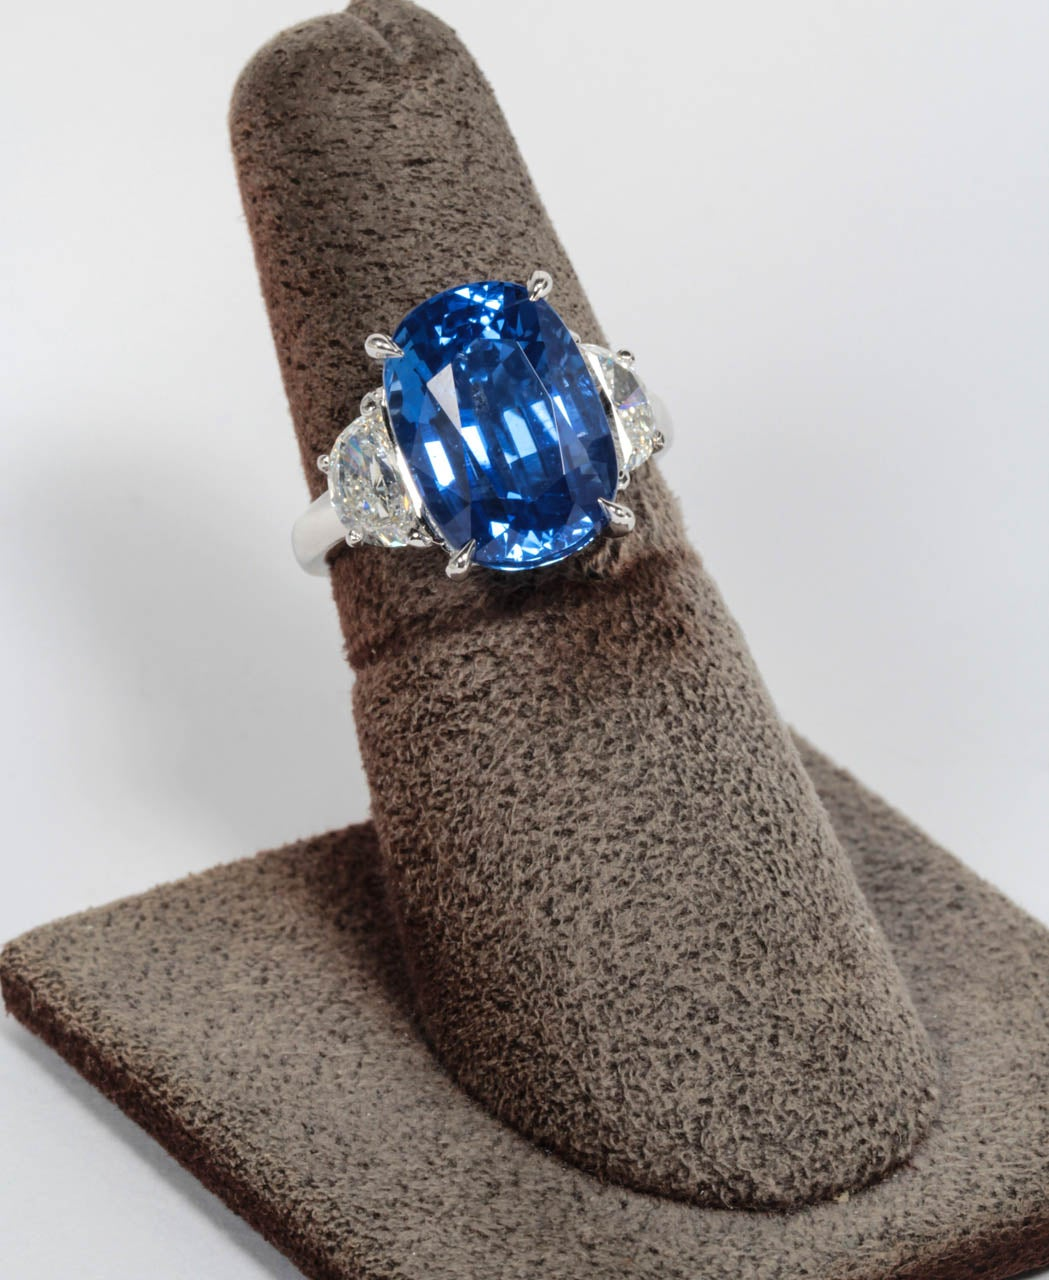 Certified Natural No Heat 11.51 Carat Cushion Cut Sapphire and Diamond Ring In New Condition For Sale In New York, NY